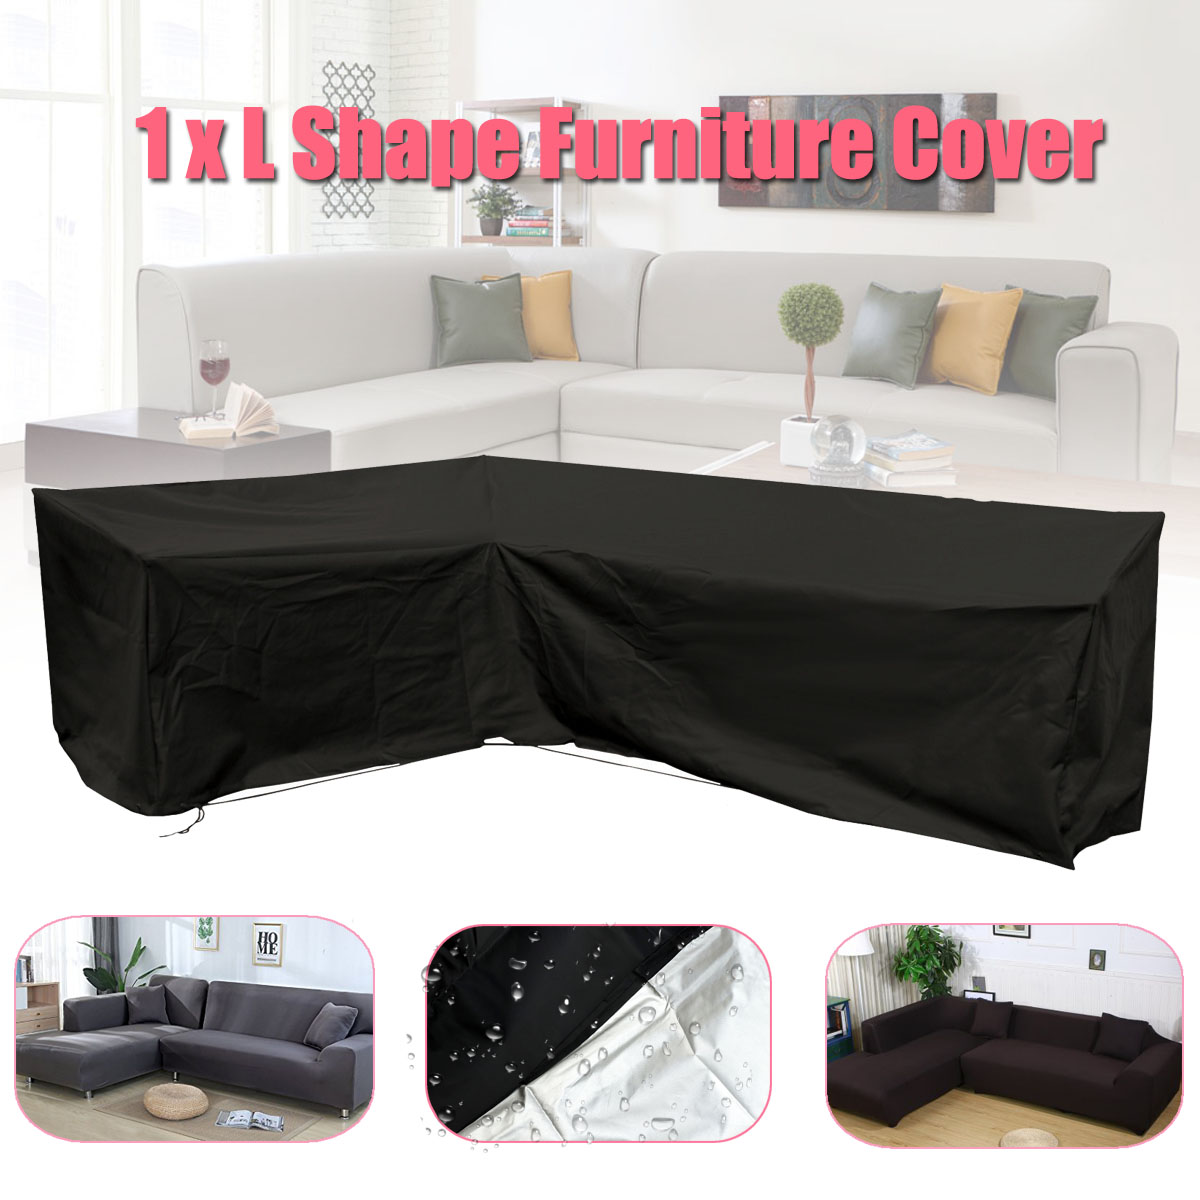 Beautiful 2pcs Garden Furniture L Shape Sofa Cover Slipcover Polyester Piano Sofa Couch Covers Living Room Outdoor Waterproof Dustproof Household Merchandises